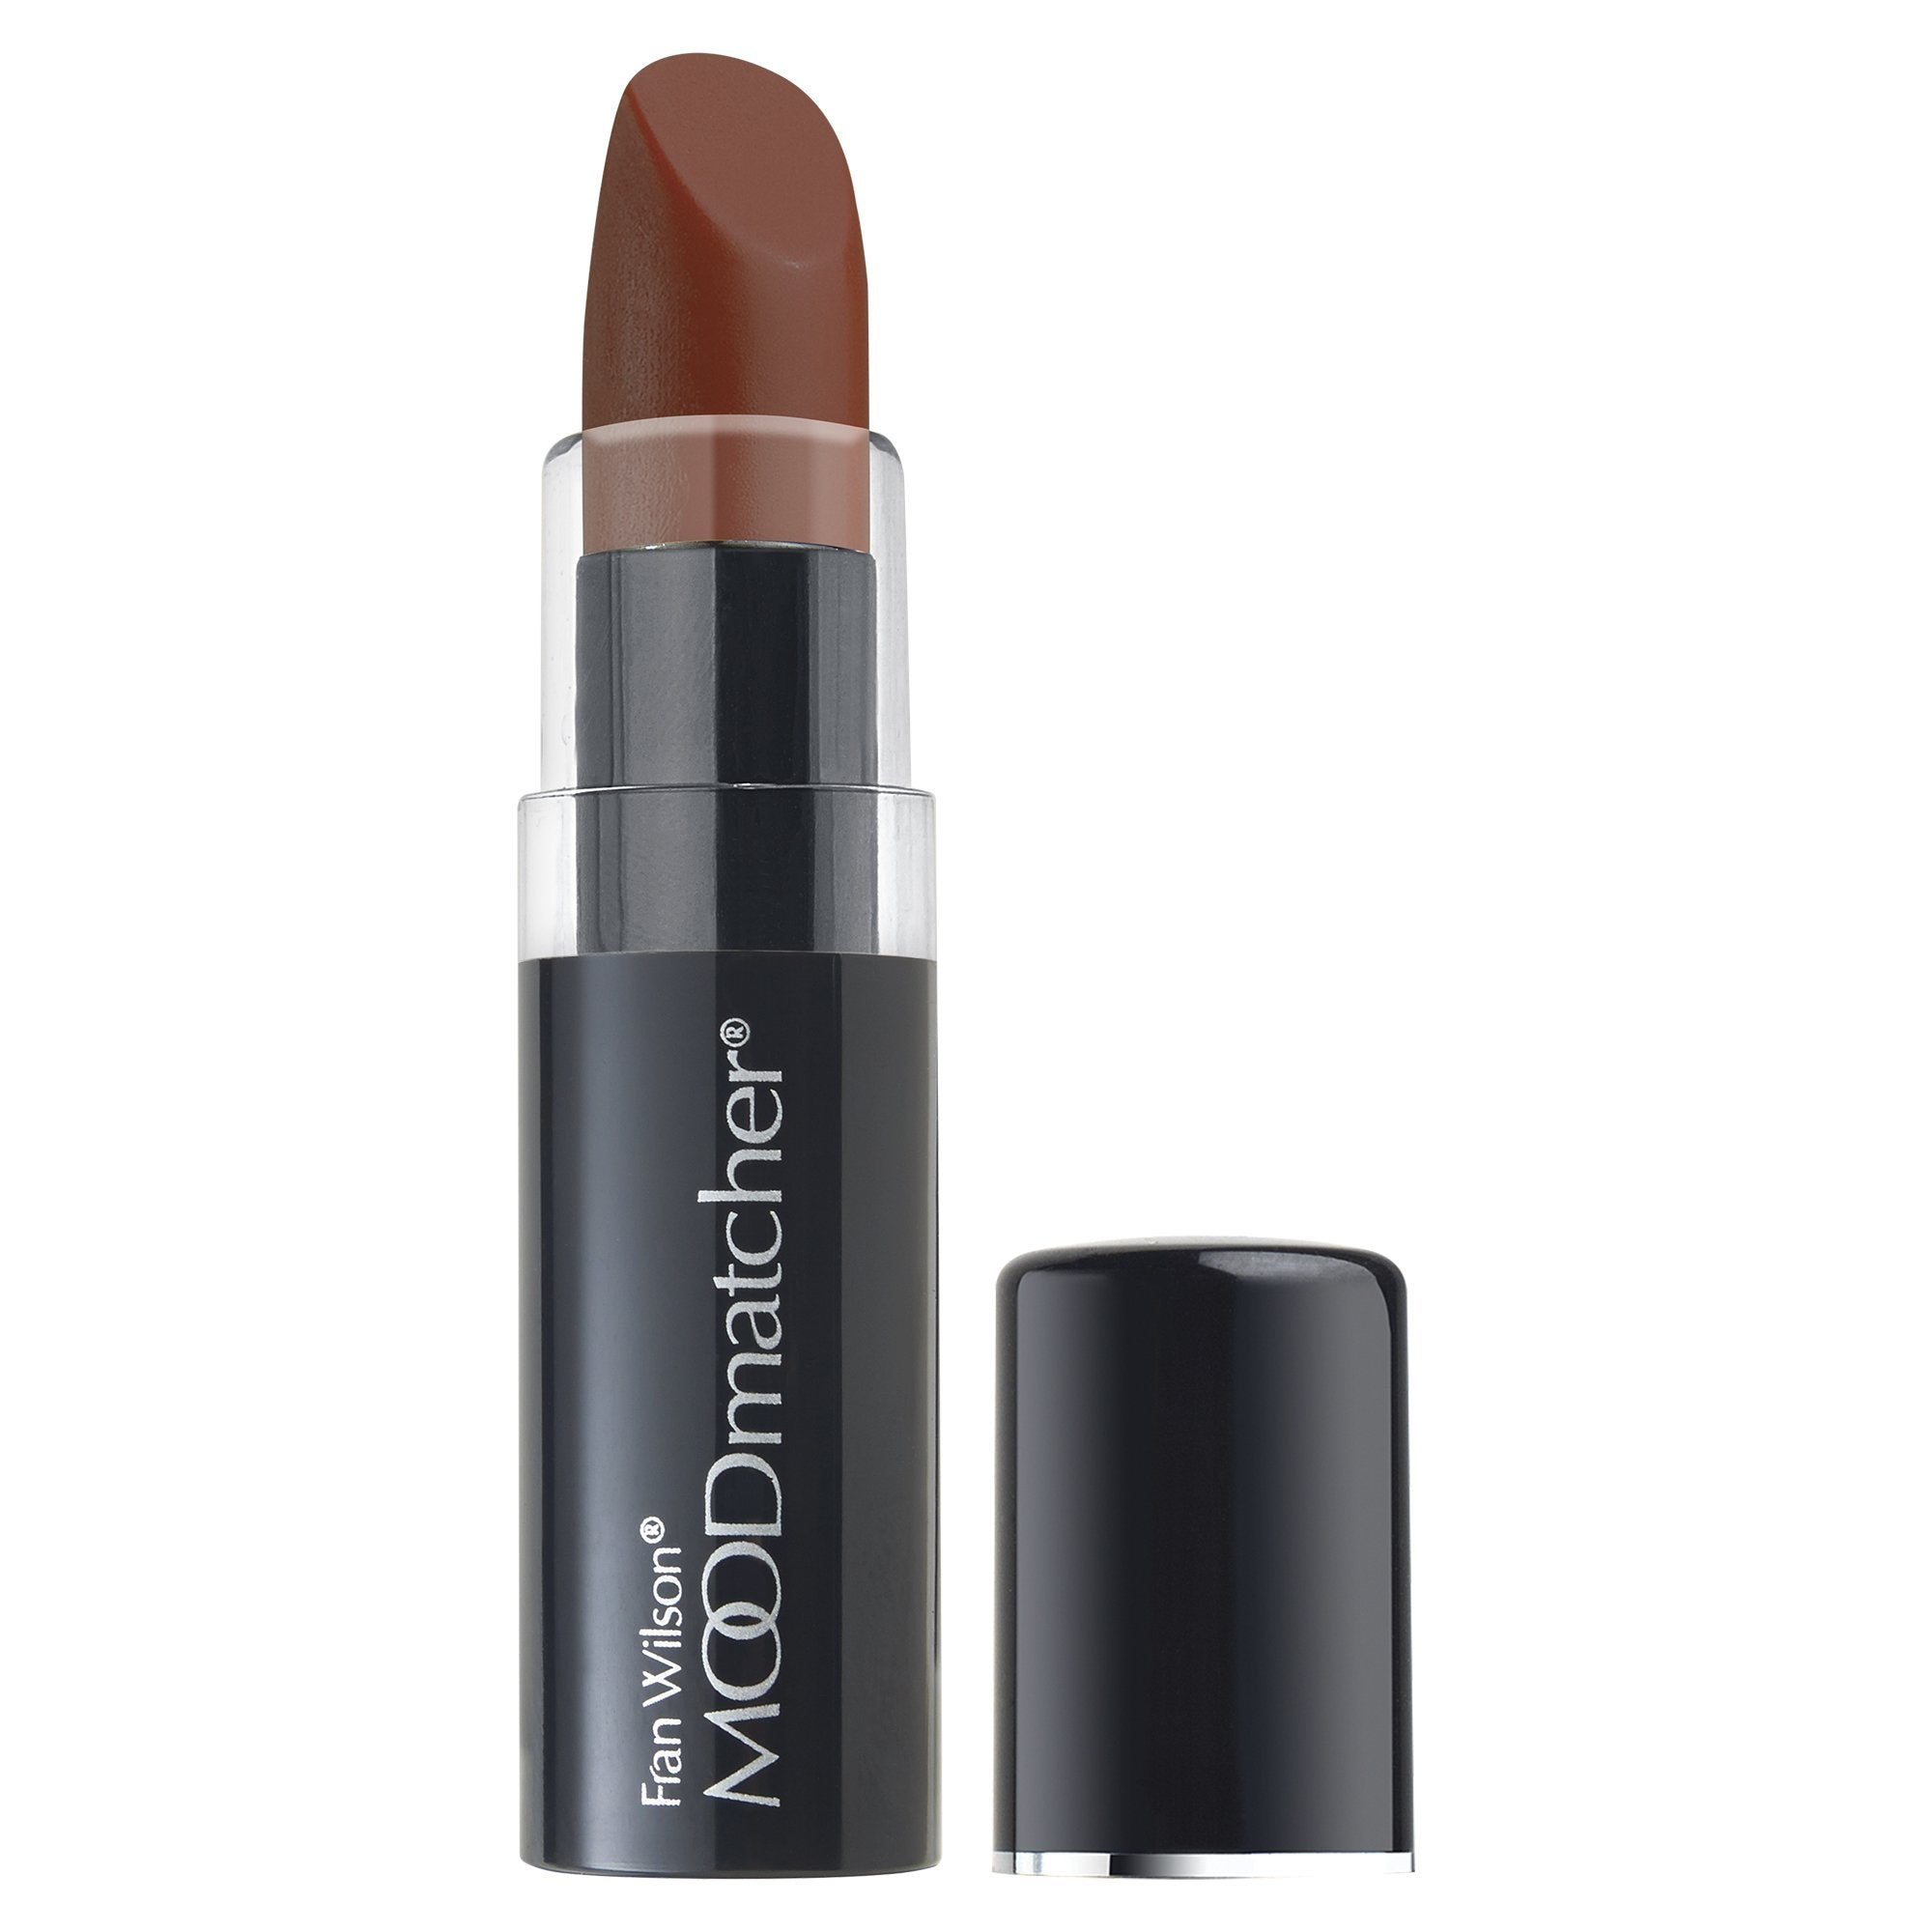 MOODmatcher® Lipsticks